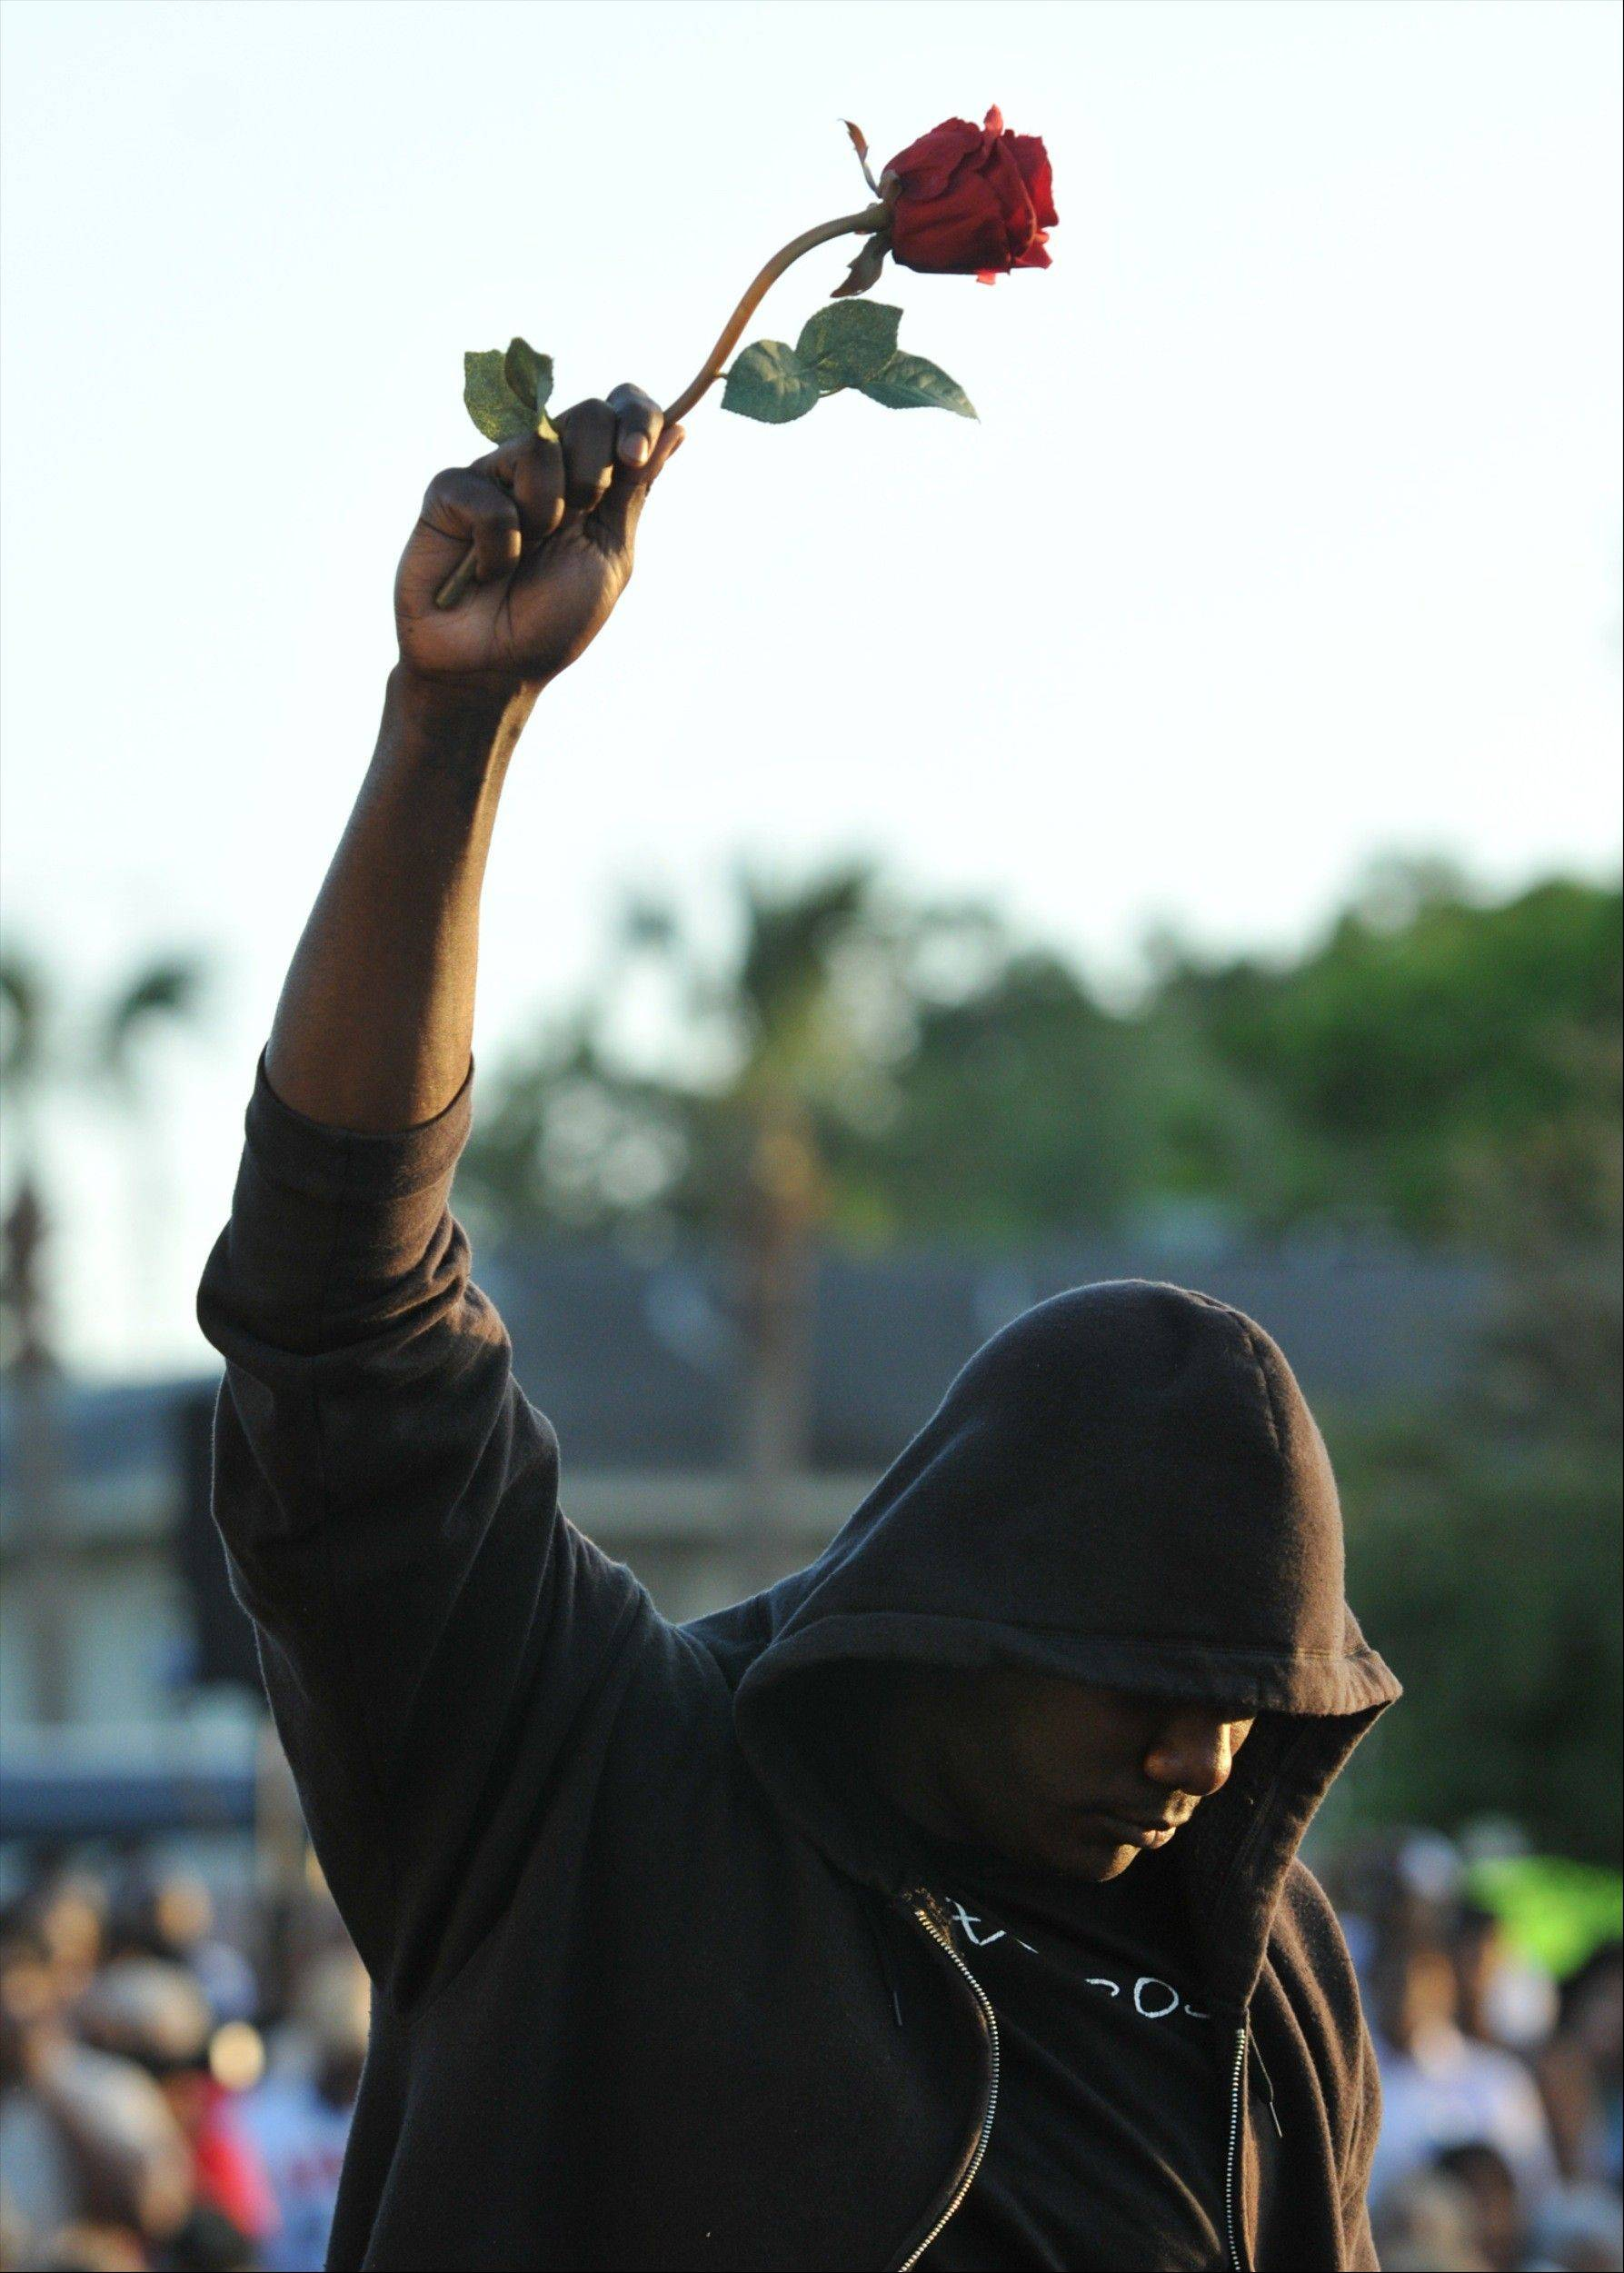 Wearing a hoodie and holding a rose, James Gilchrist of Orlando, Fla., attends a rally for Trayvon Martin, the teen shot by George Michael Zimmerman while on Neighborhood Watch patrol, Thursday, March 22, 2012 in Sanford, Fla.